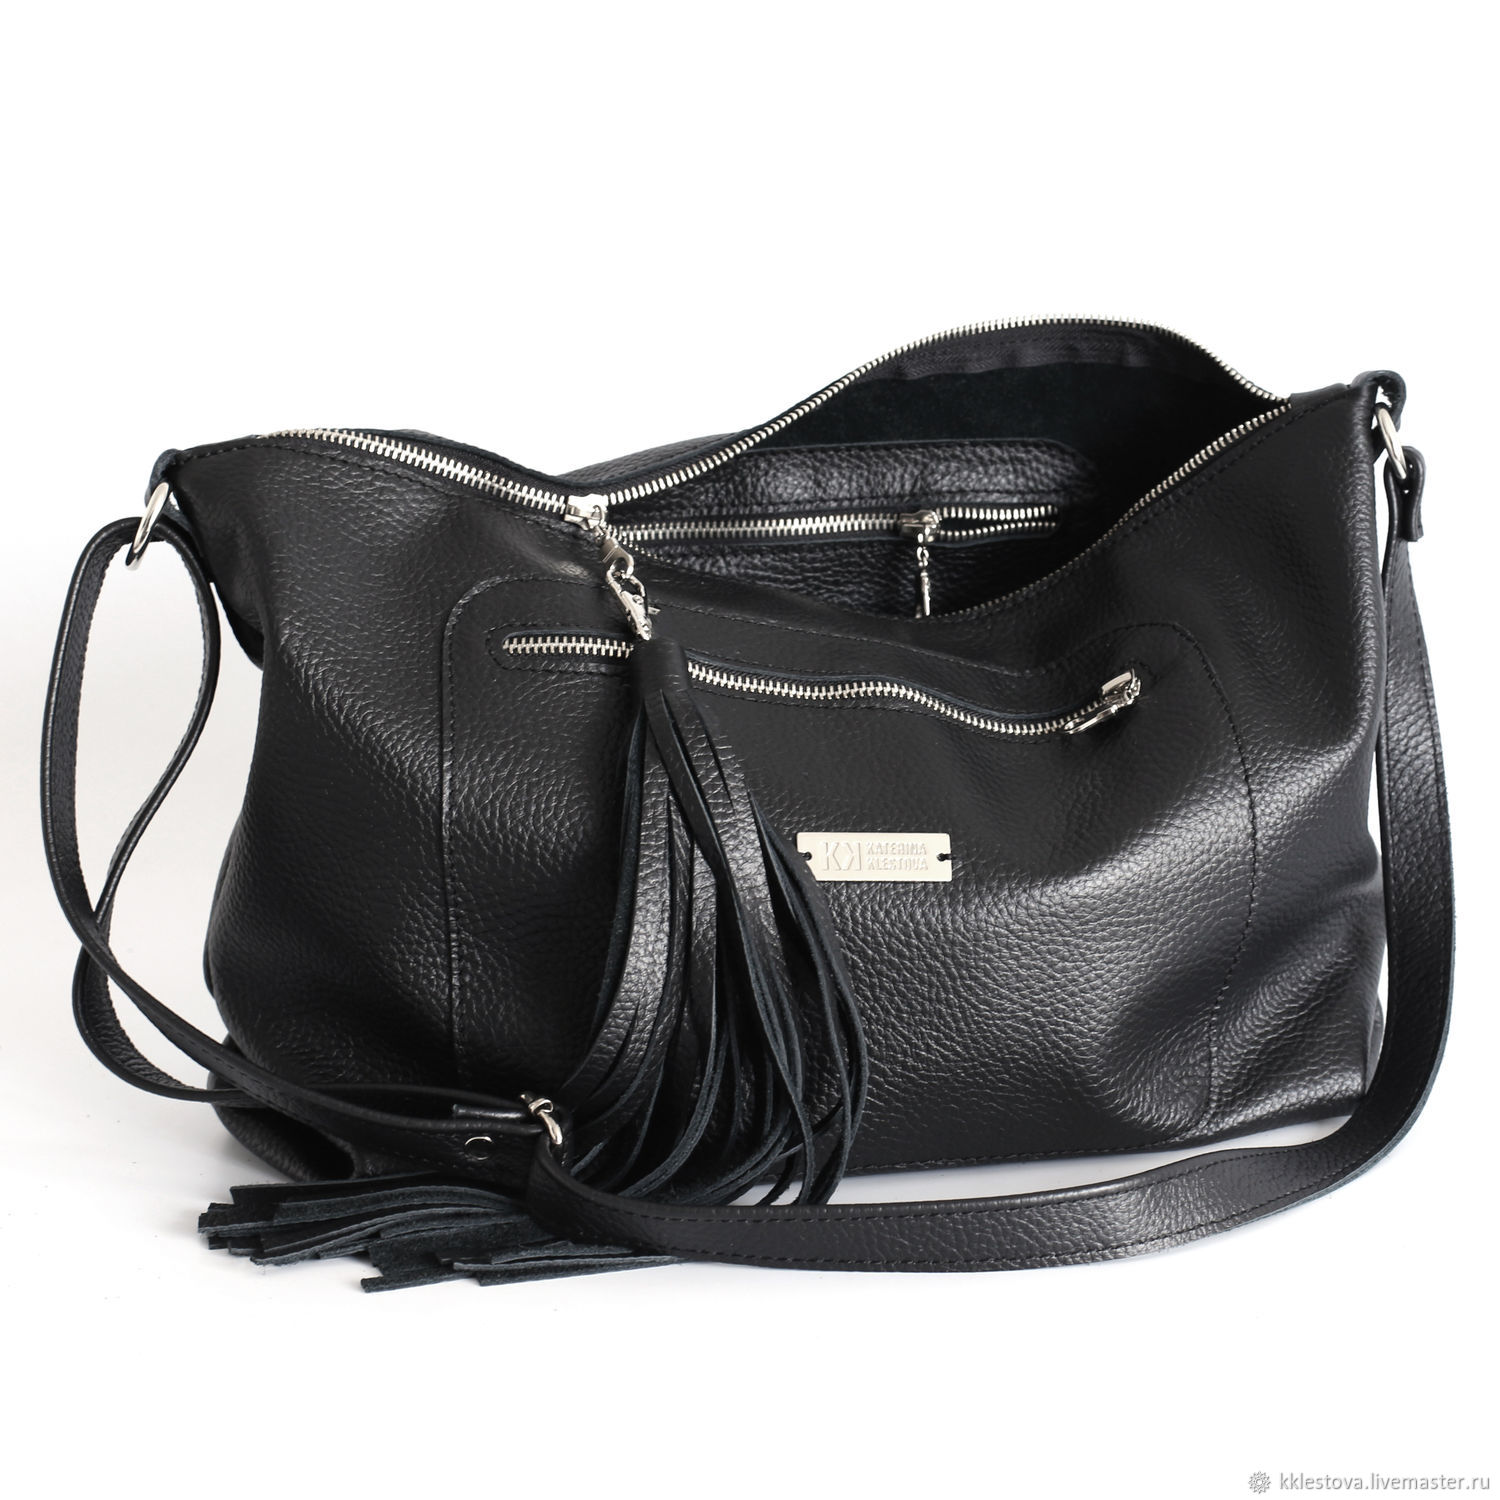 Soft black leather Bag hobo Crossbody with shoulder strap, Sacks, Moscow,  Фото №1